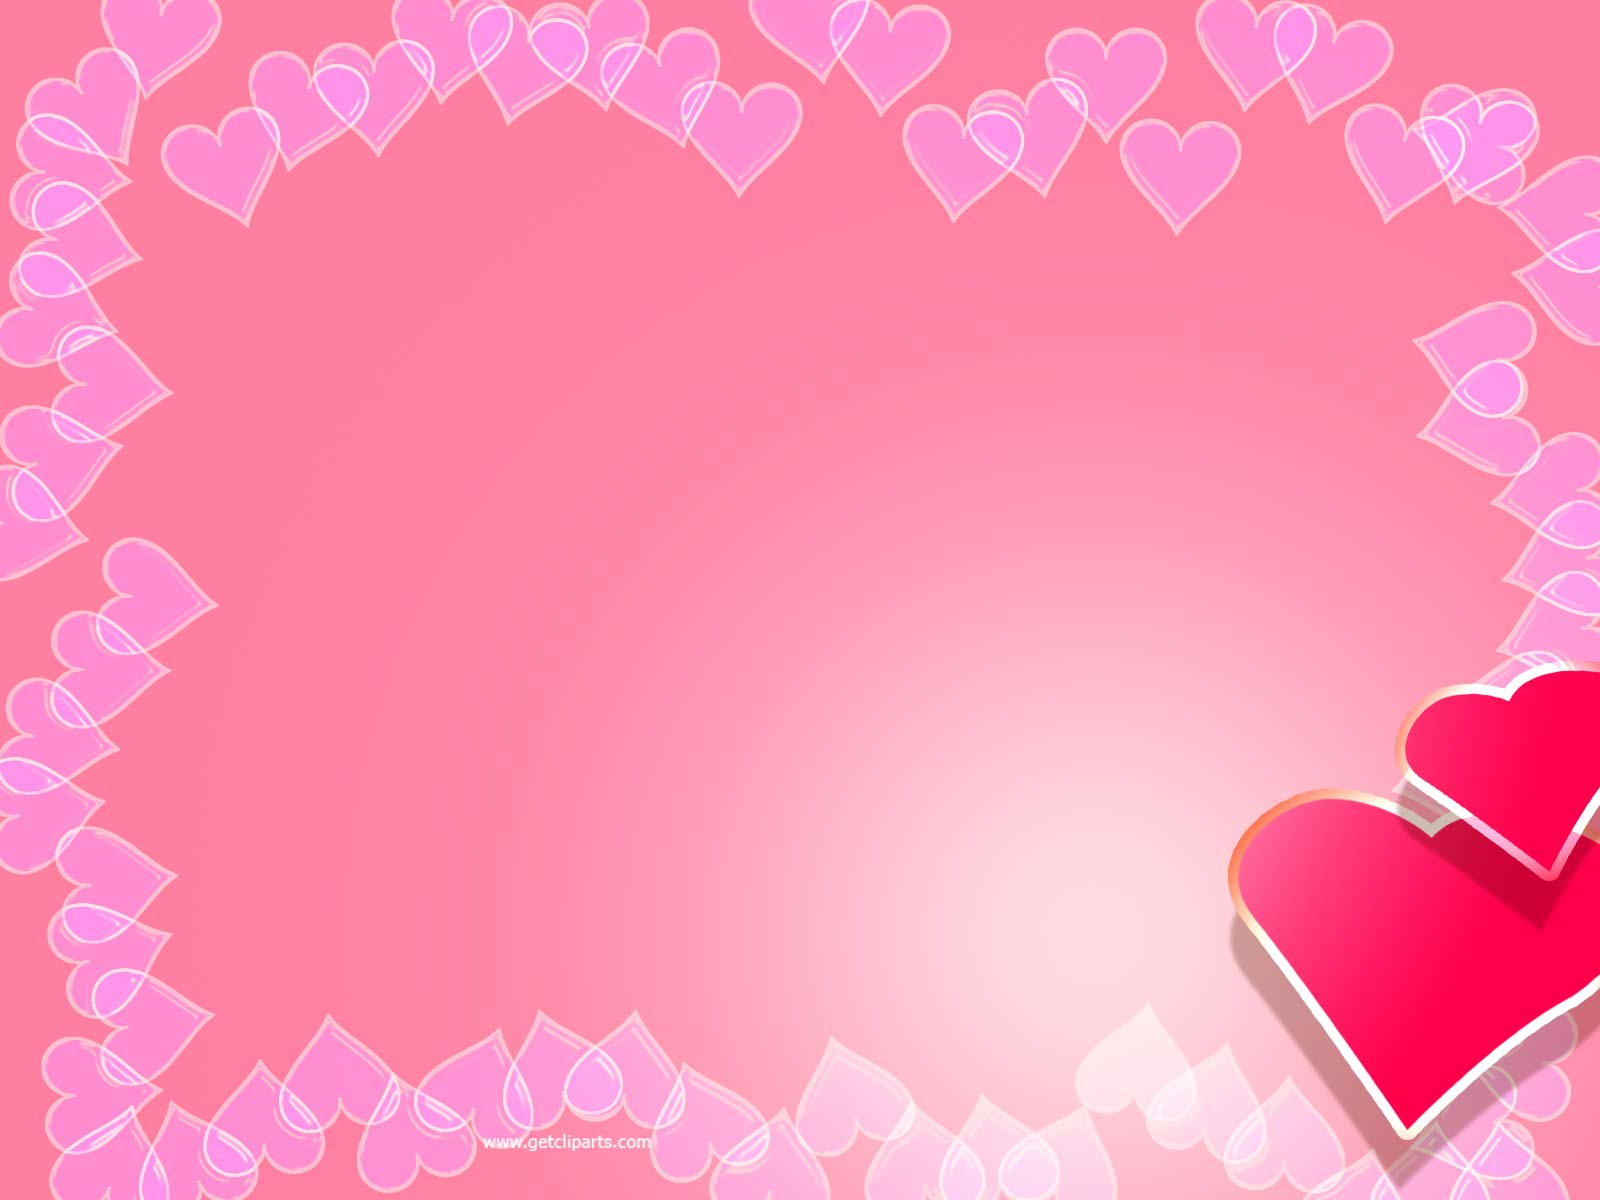 Valentine Backgrounds For PowerPoint   Border and Frame PPT Templates 1600x1200